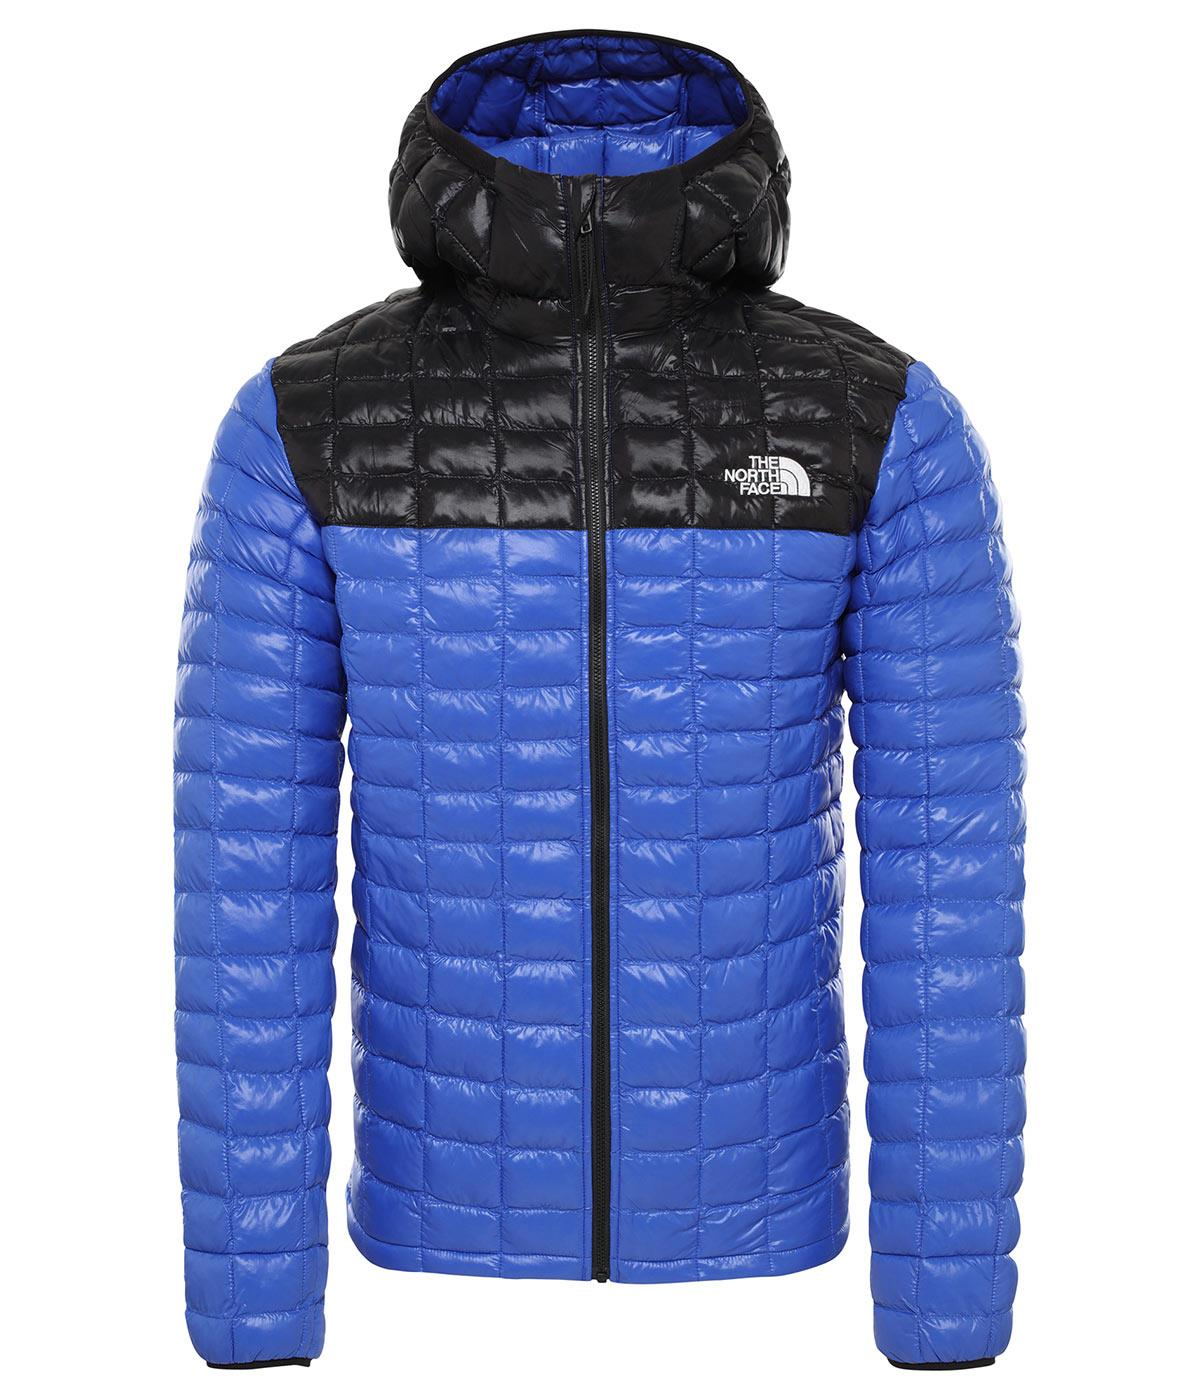 The North Face Erkek Tbll Eco Hdıe Ceket NF0A3Y3MEF11